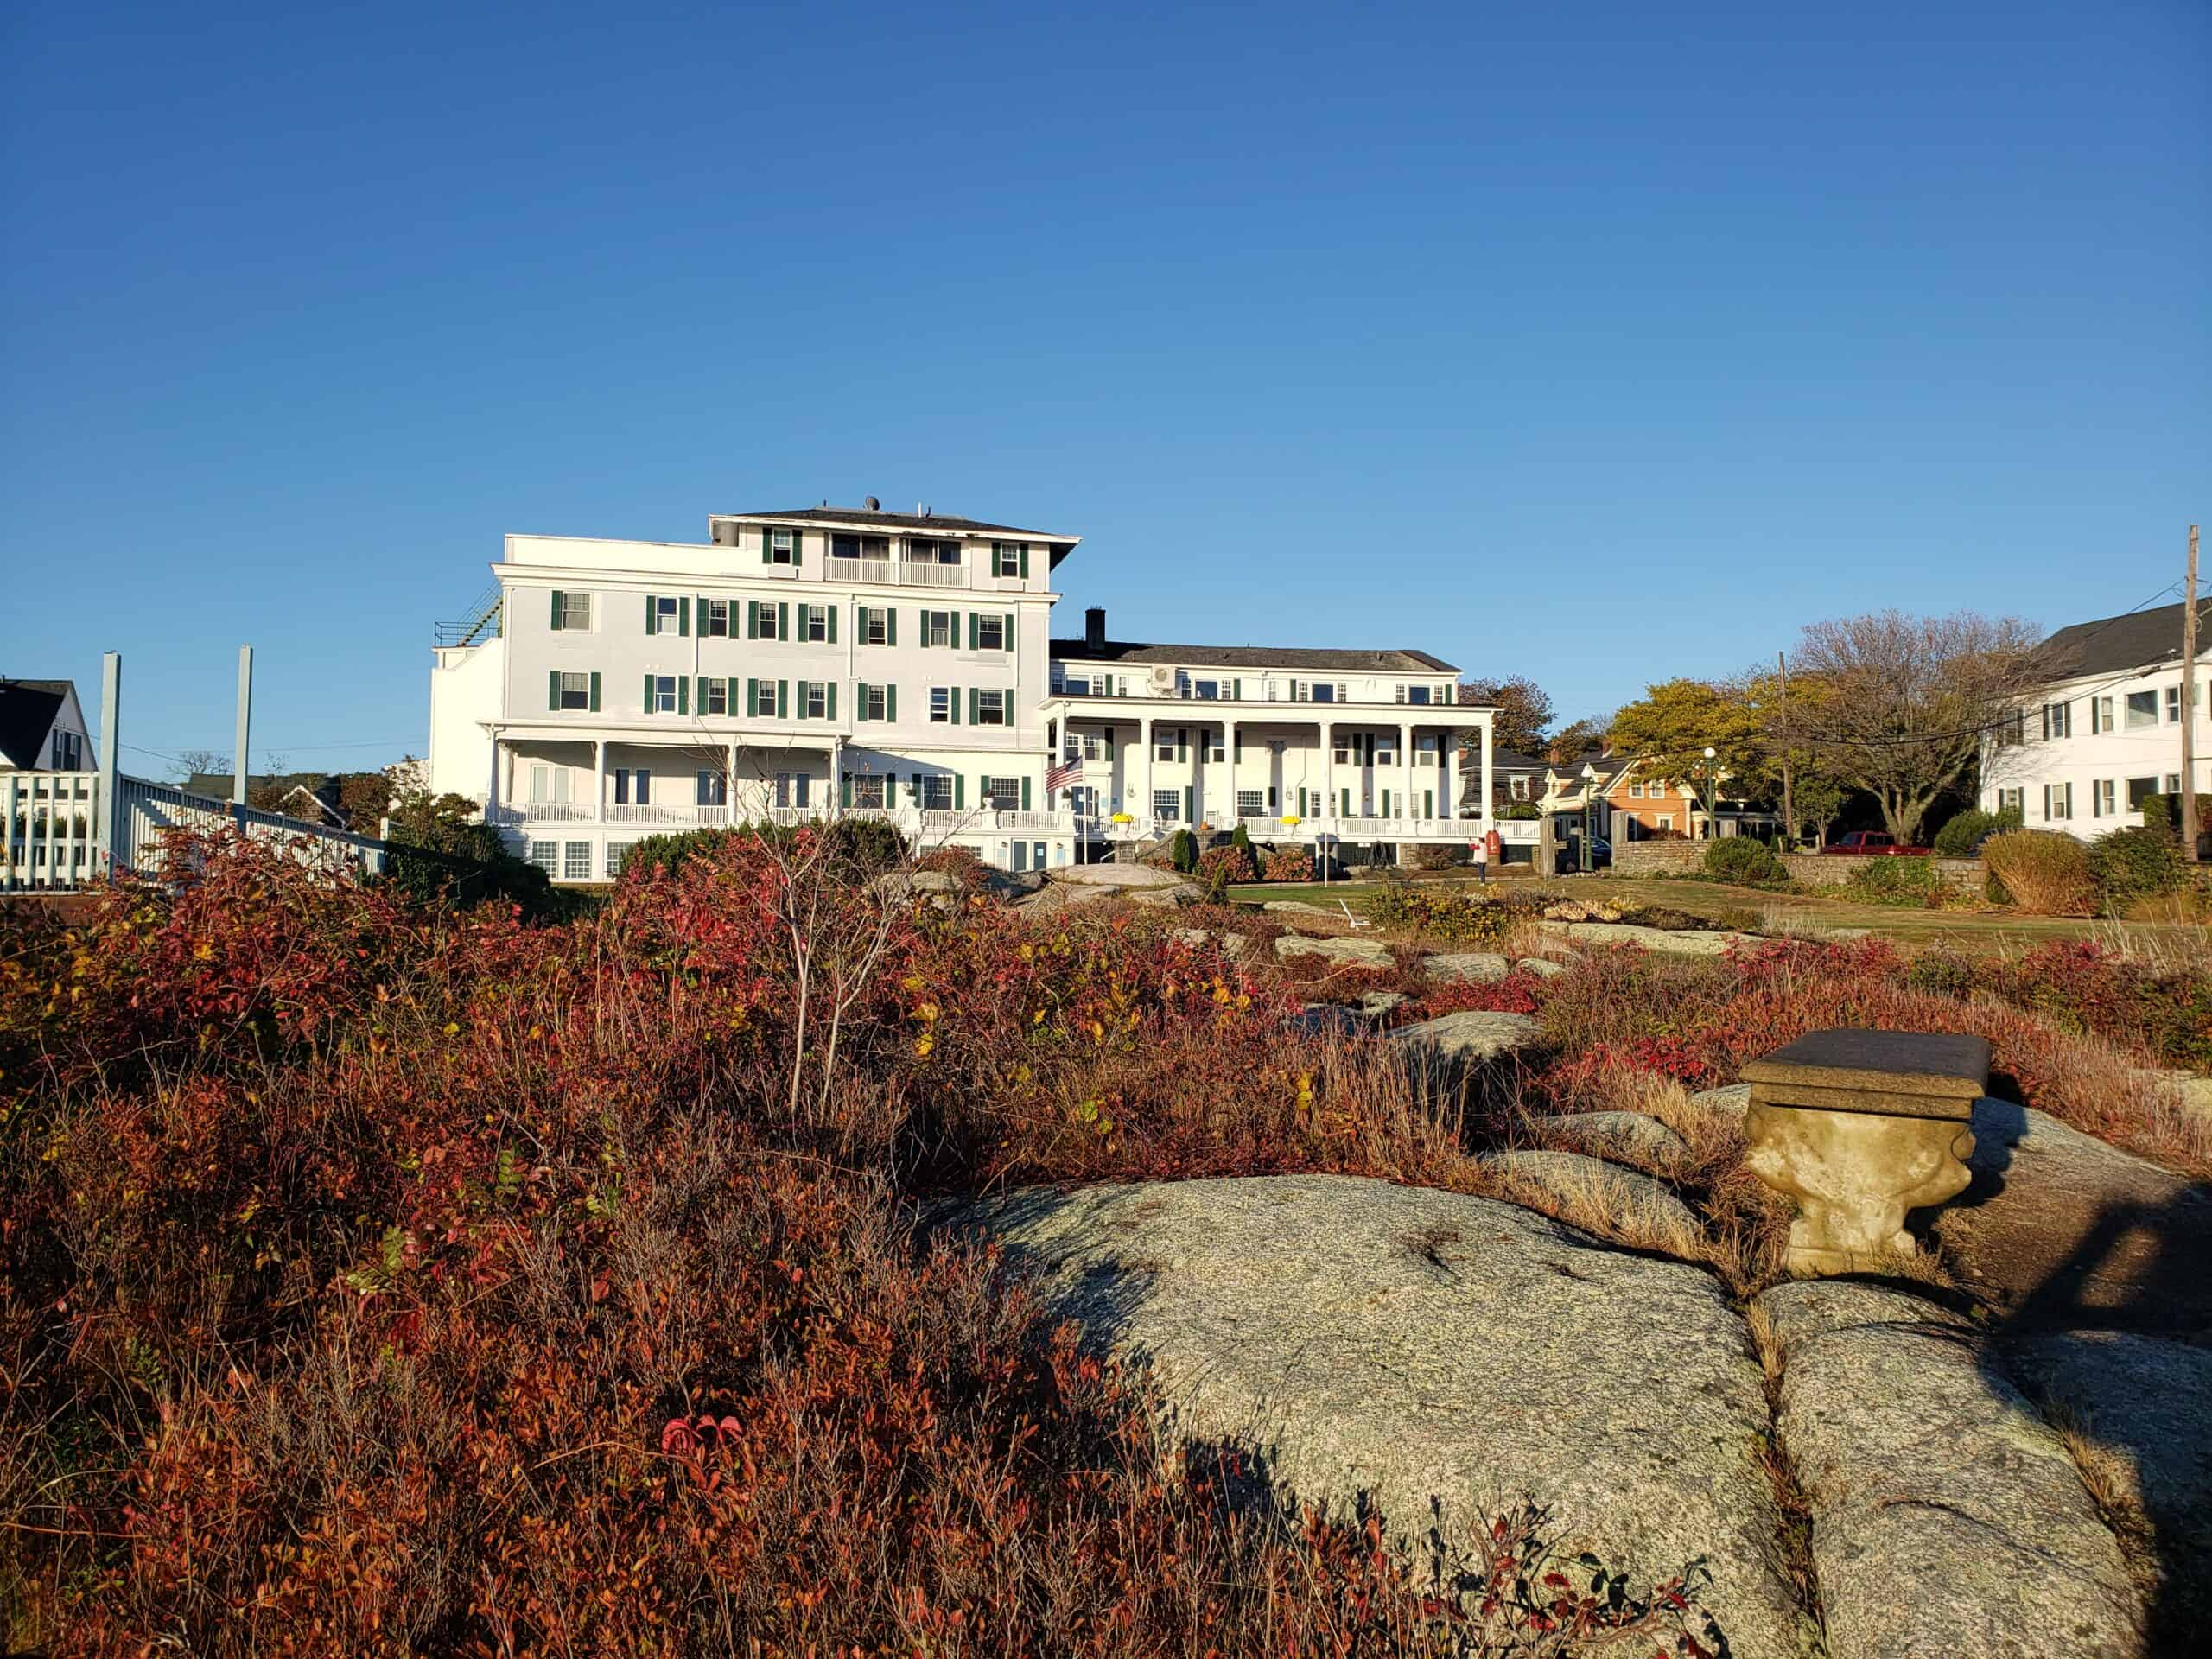 emerson inn rockport ma - view of historic new england inn from rocky garden